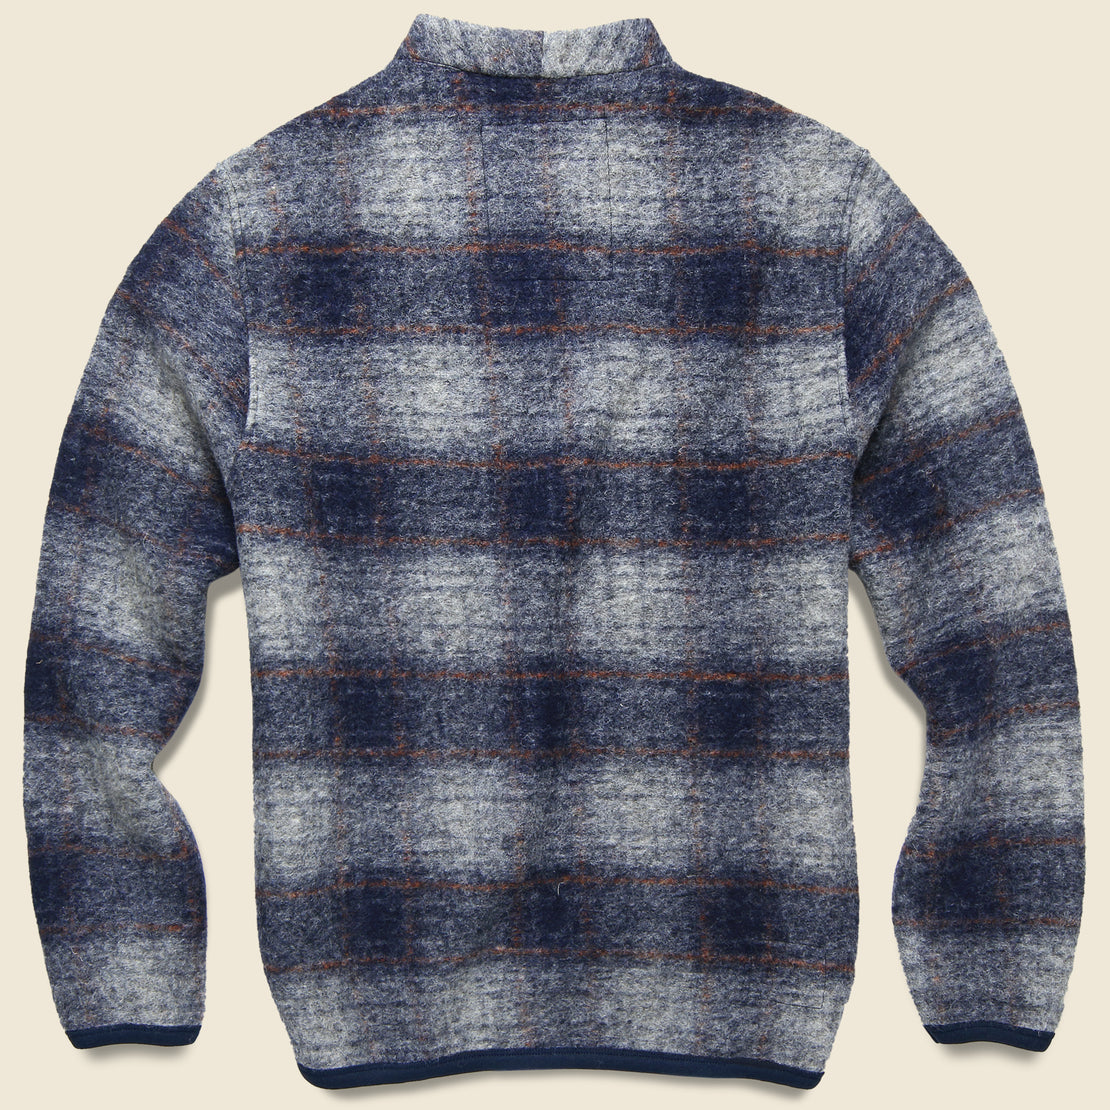 Wool Fleece Cardigan - Navy Check